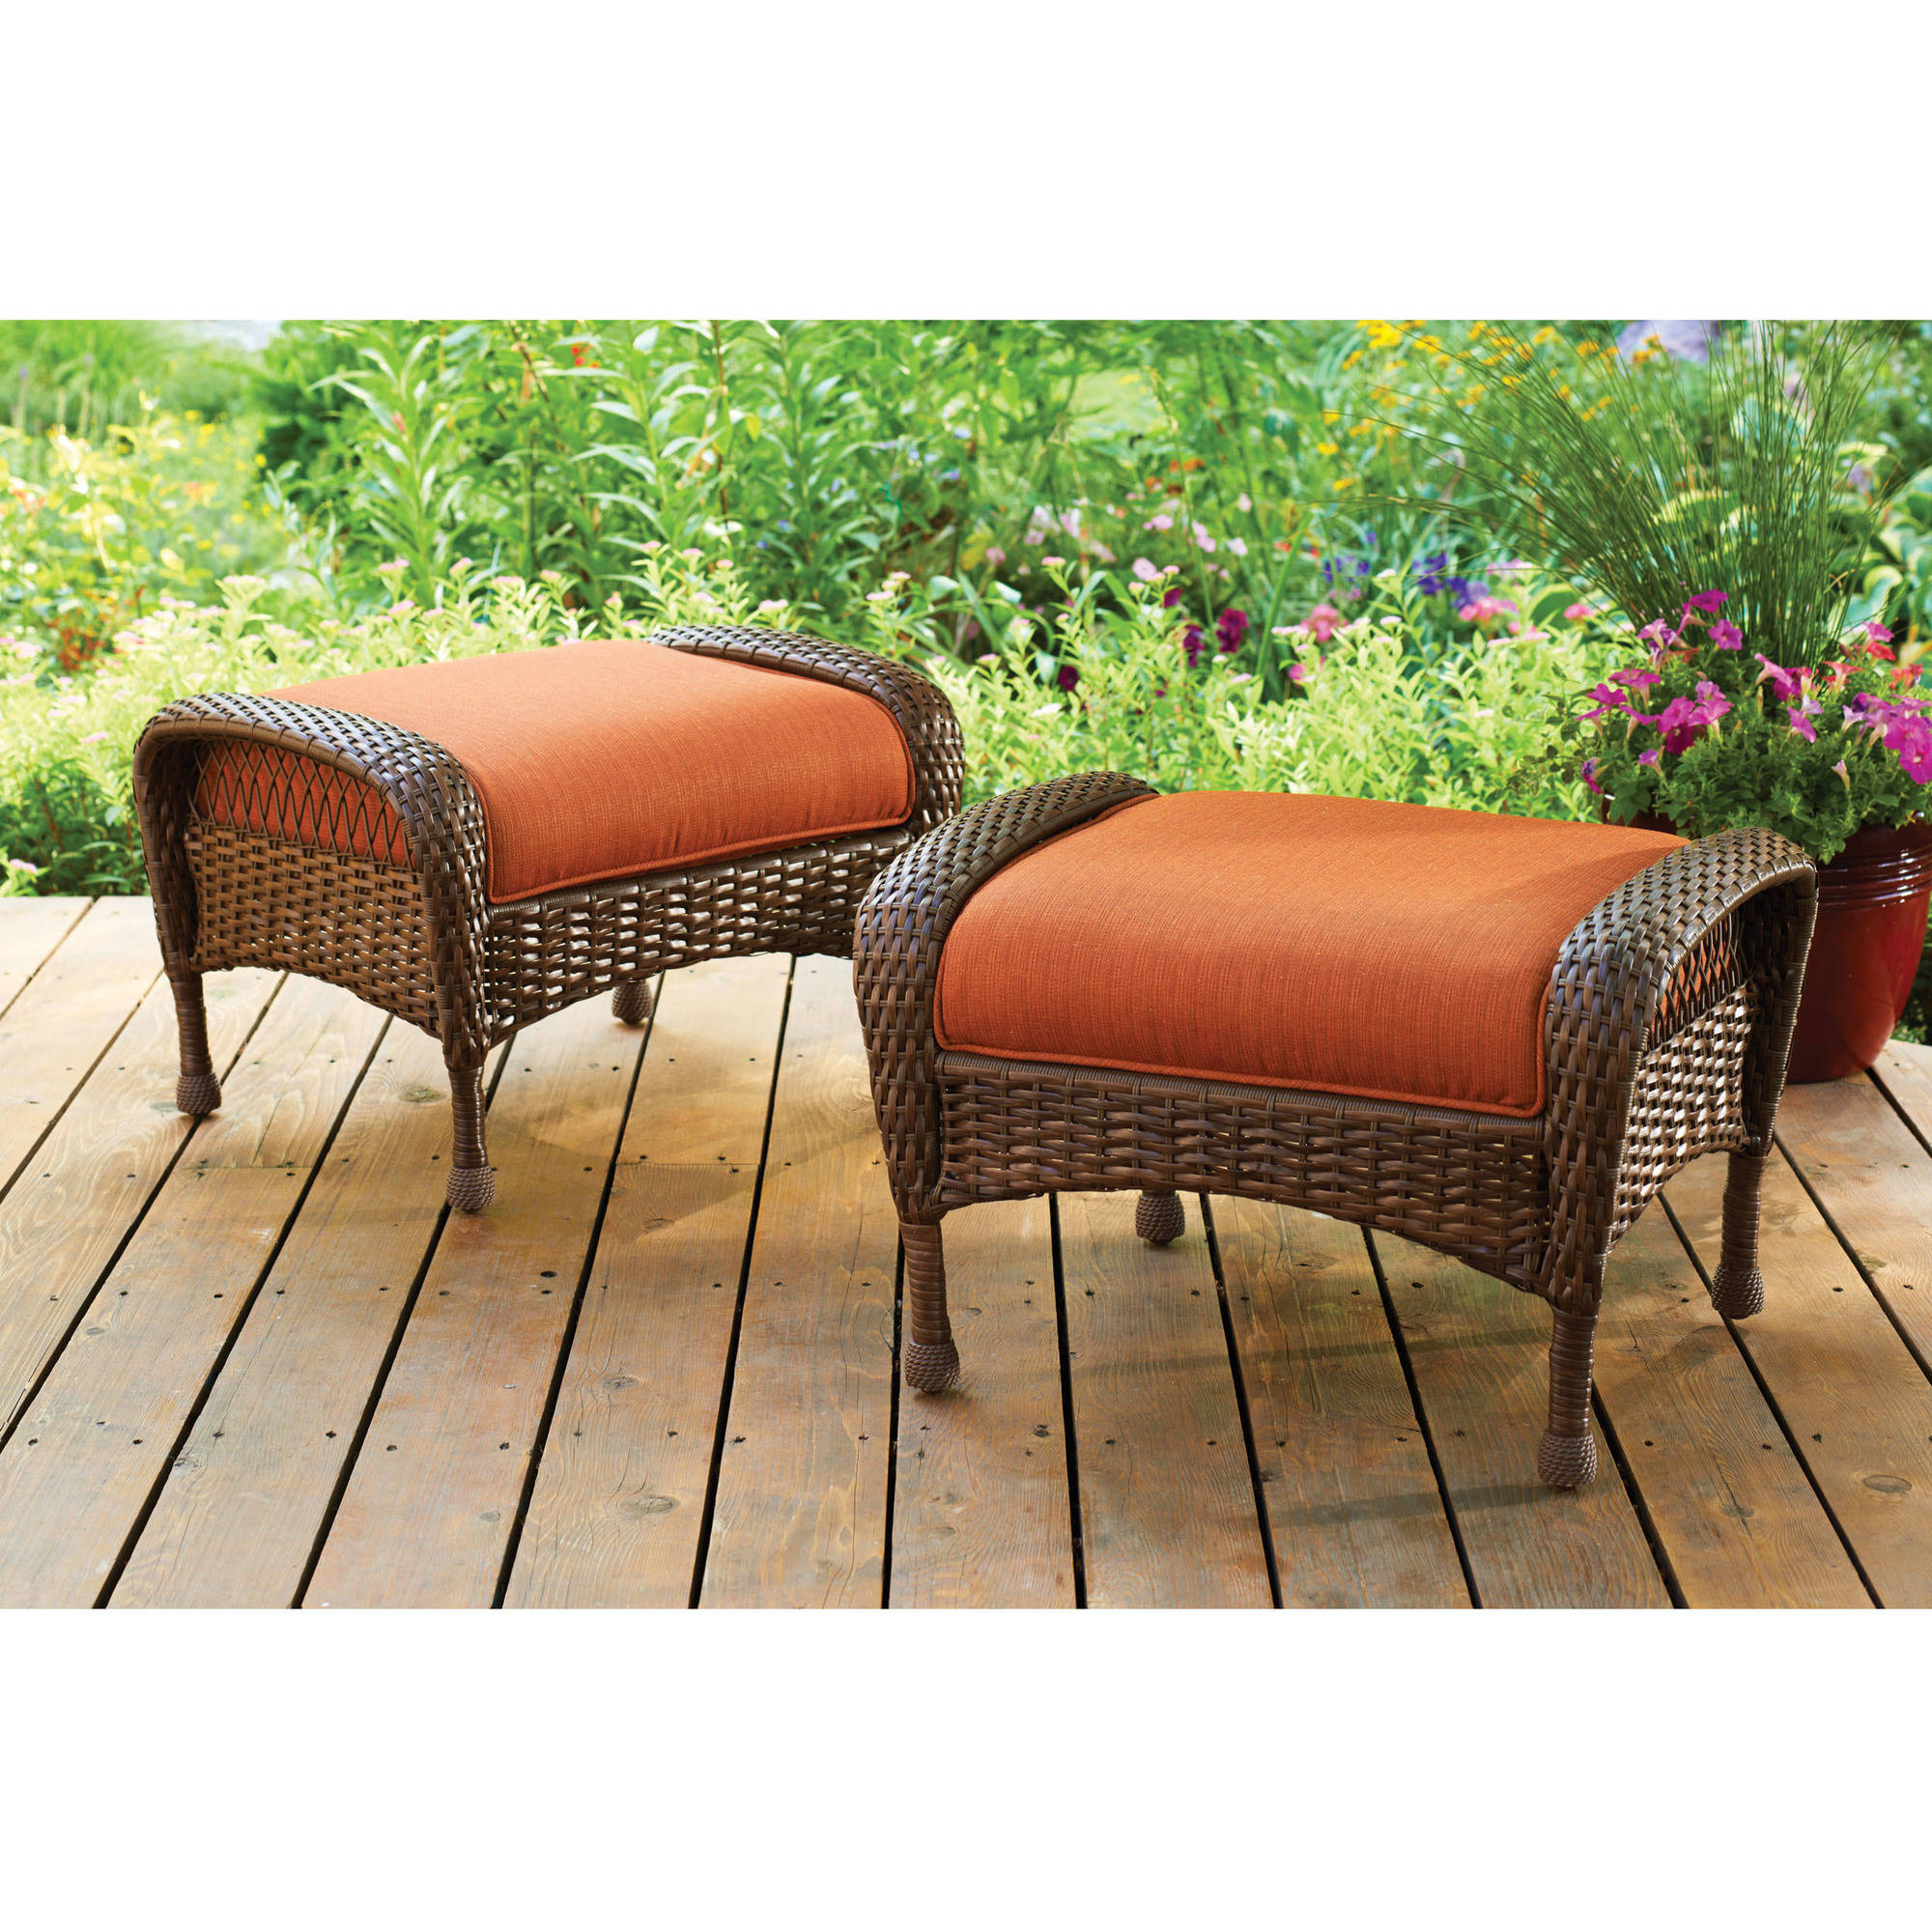 Better Homes and Gardens Azalea Ridge Outdoor Ottomans, Set of 2